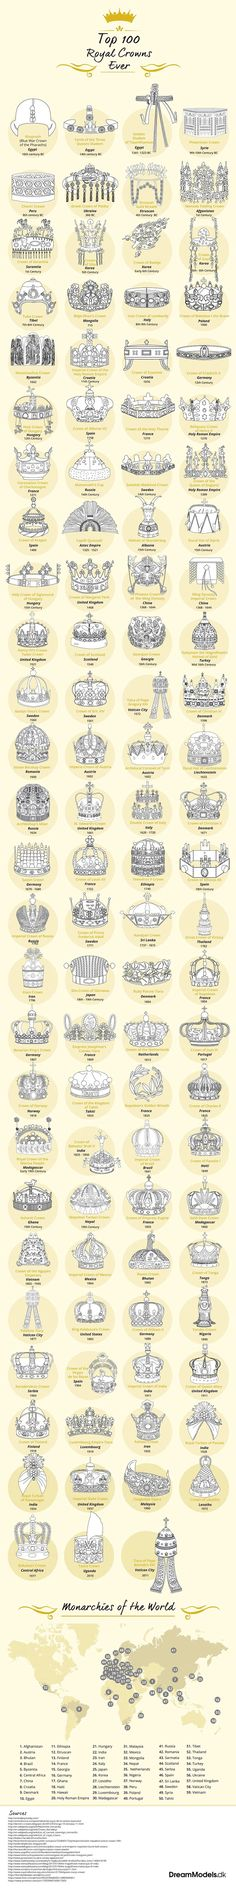 100 Royal Crowns of the World - History Infographic. Topic: crown, royalty, regal, king, queen, medieval age, castle, orb, jewelry, prince, princess, design, style, emperor, empress, sultan, history.